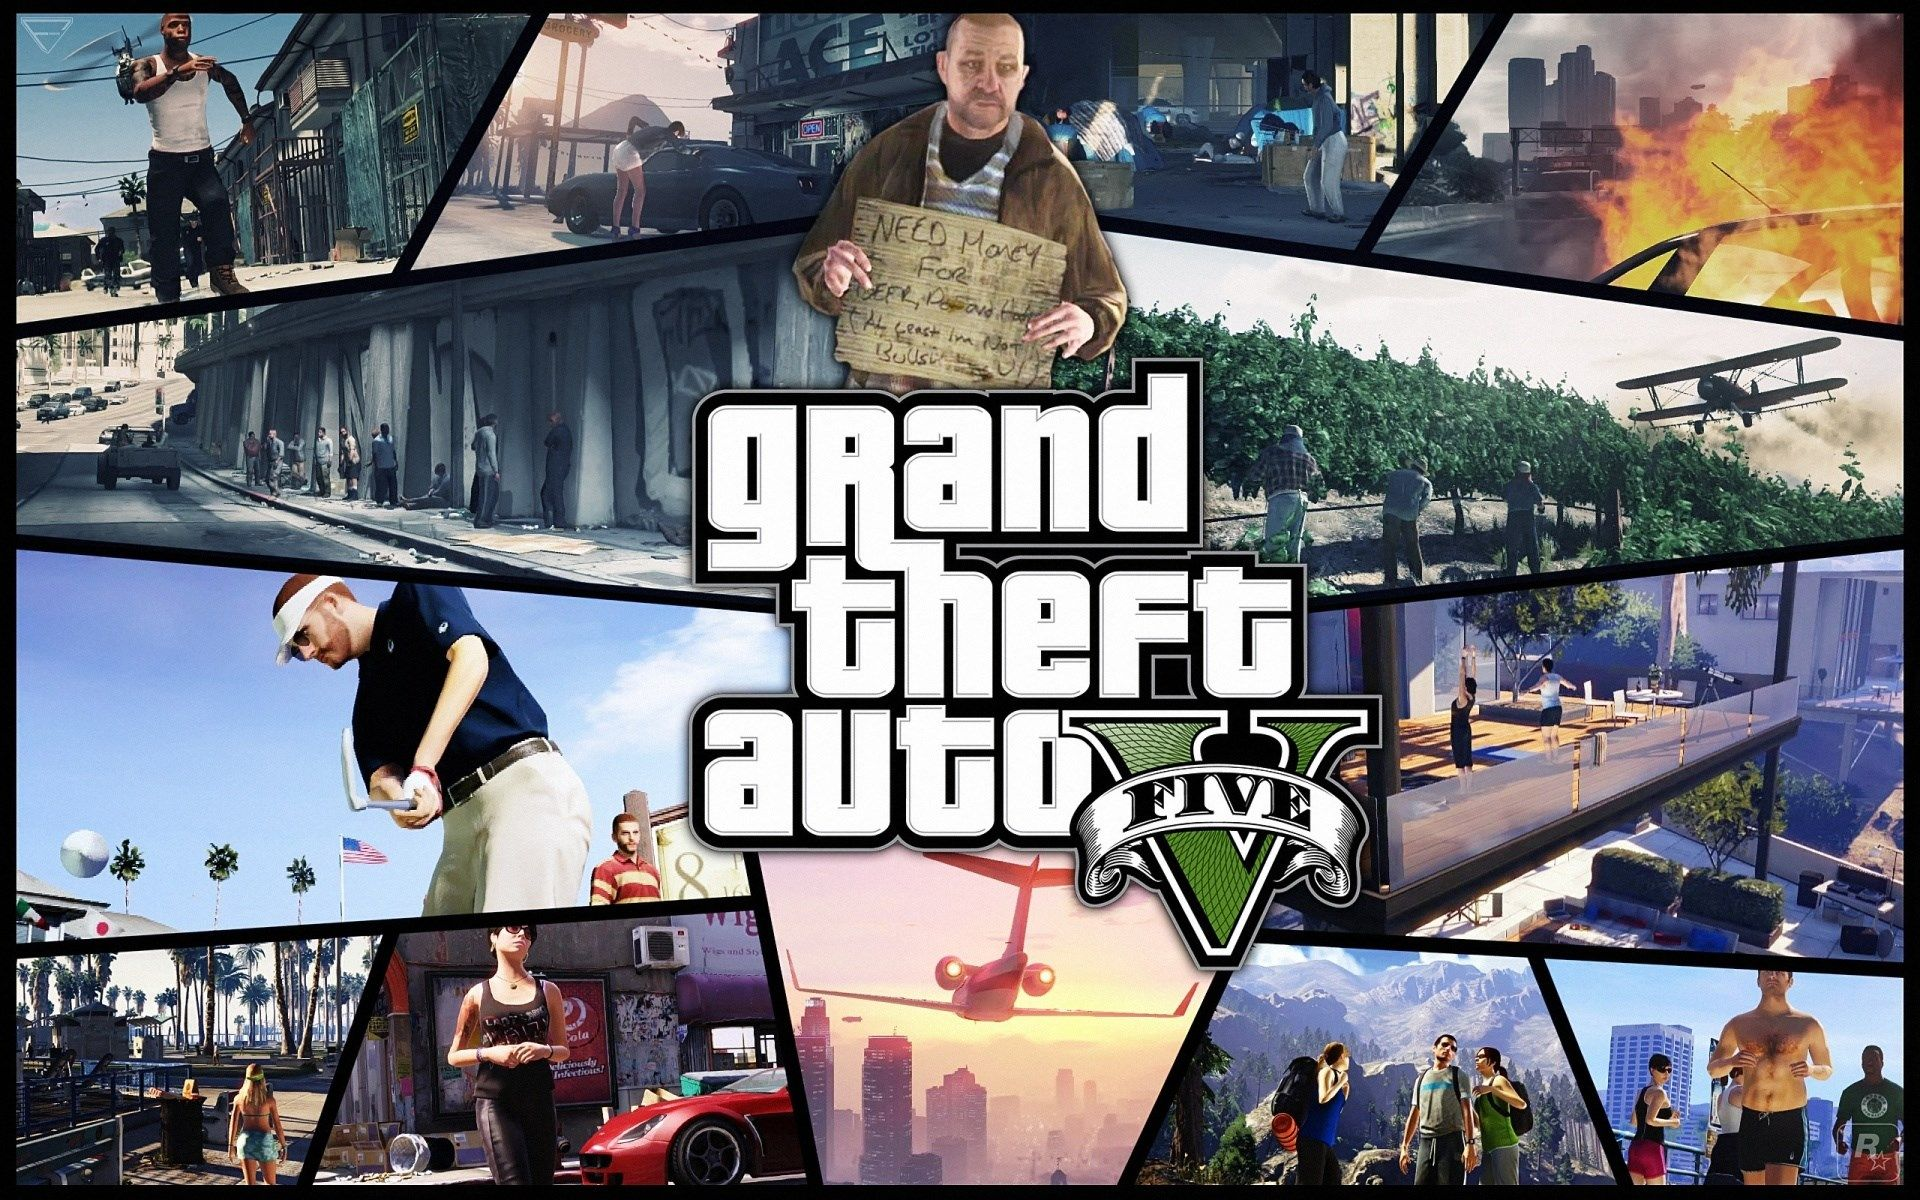 Free desktop grand theft auto v wallpaper 1920x1200 636 kb free desktop grand theft auto v wallpaper 1920x1200 636 kb voltagebd Image collections